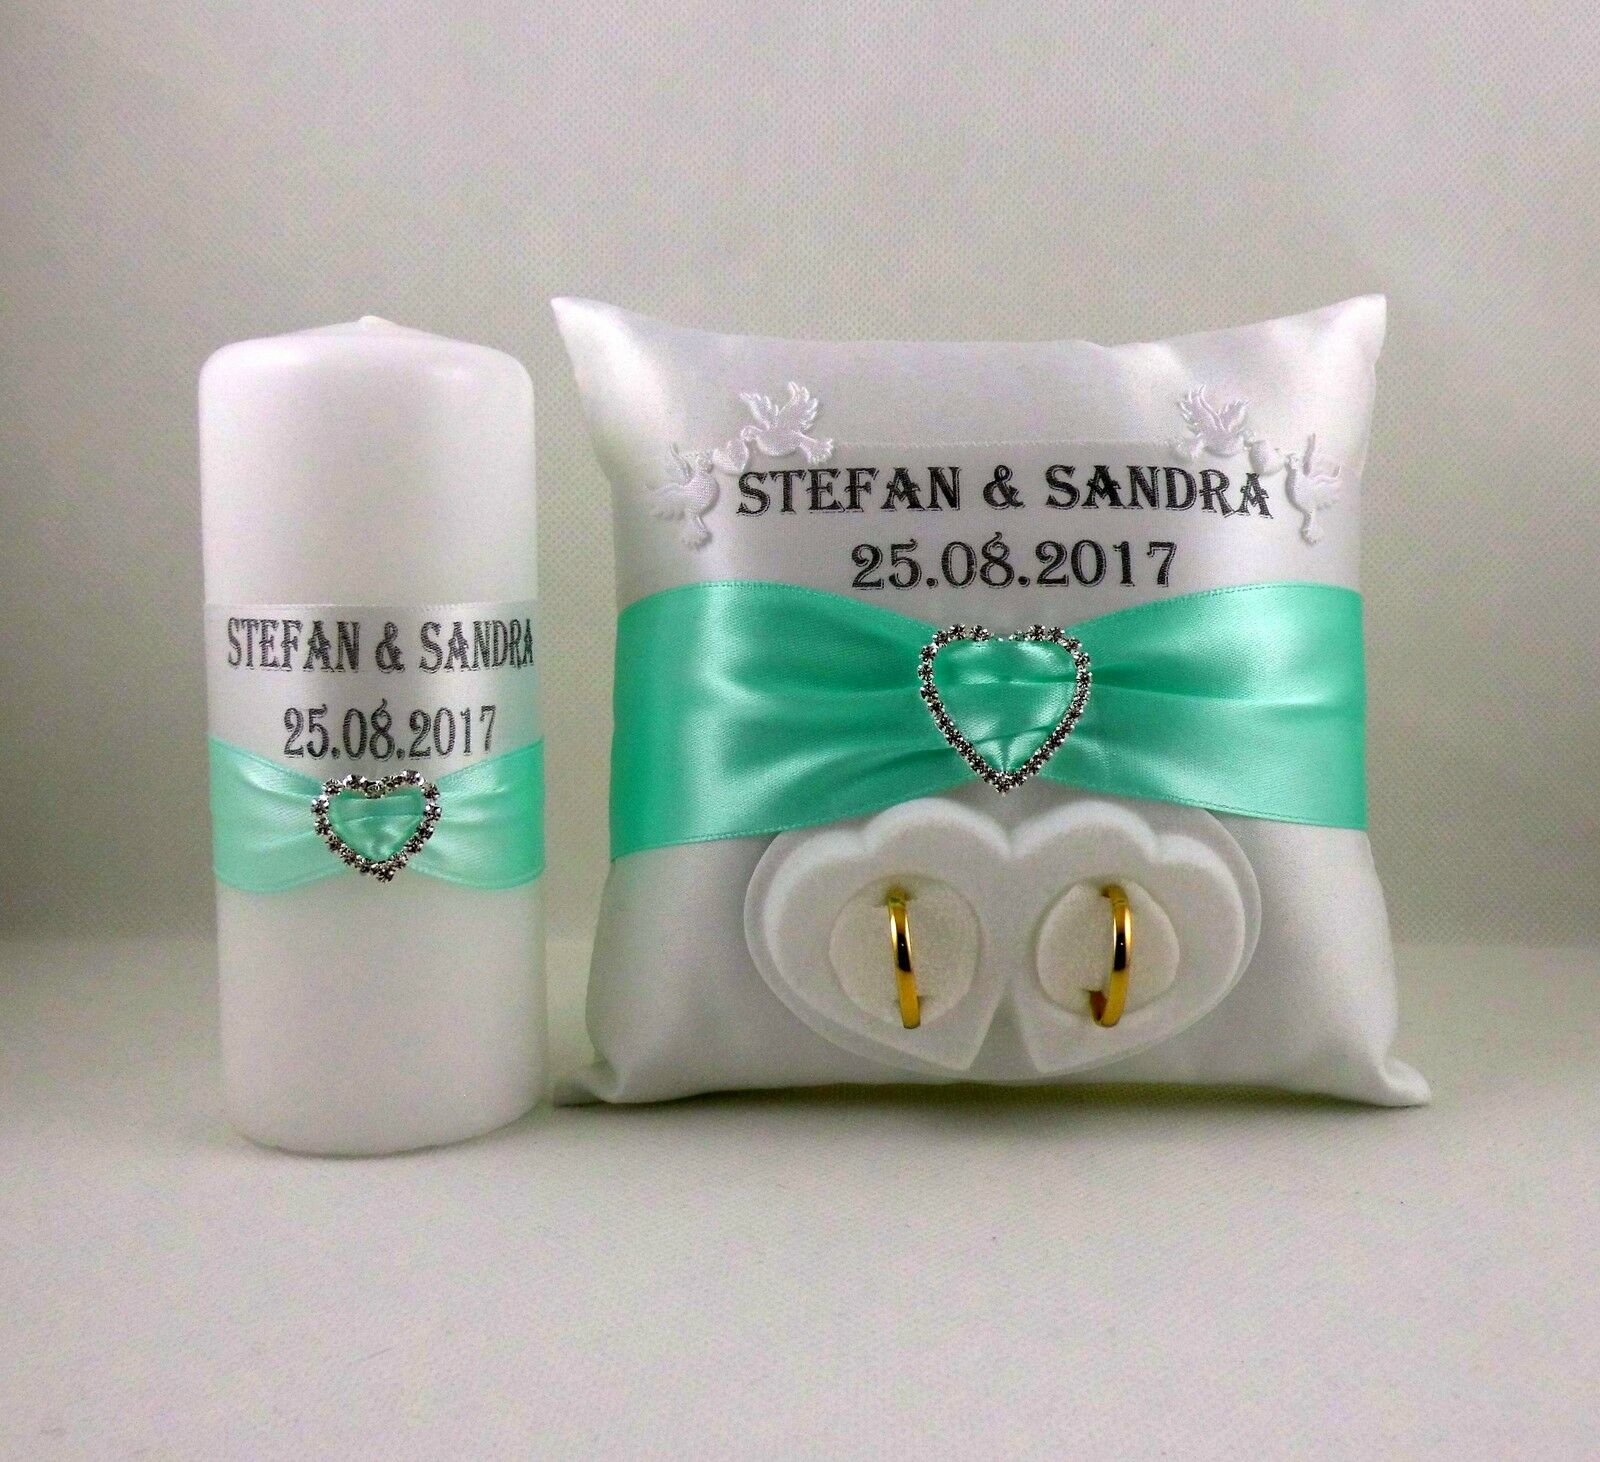 Ringpillow With Name And Date, Box For Wedding Ring Candle Set Of